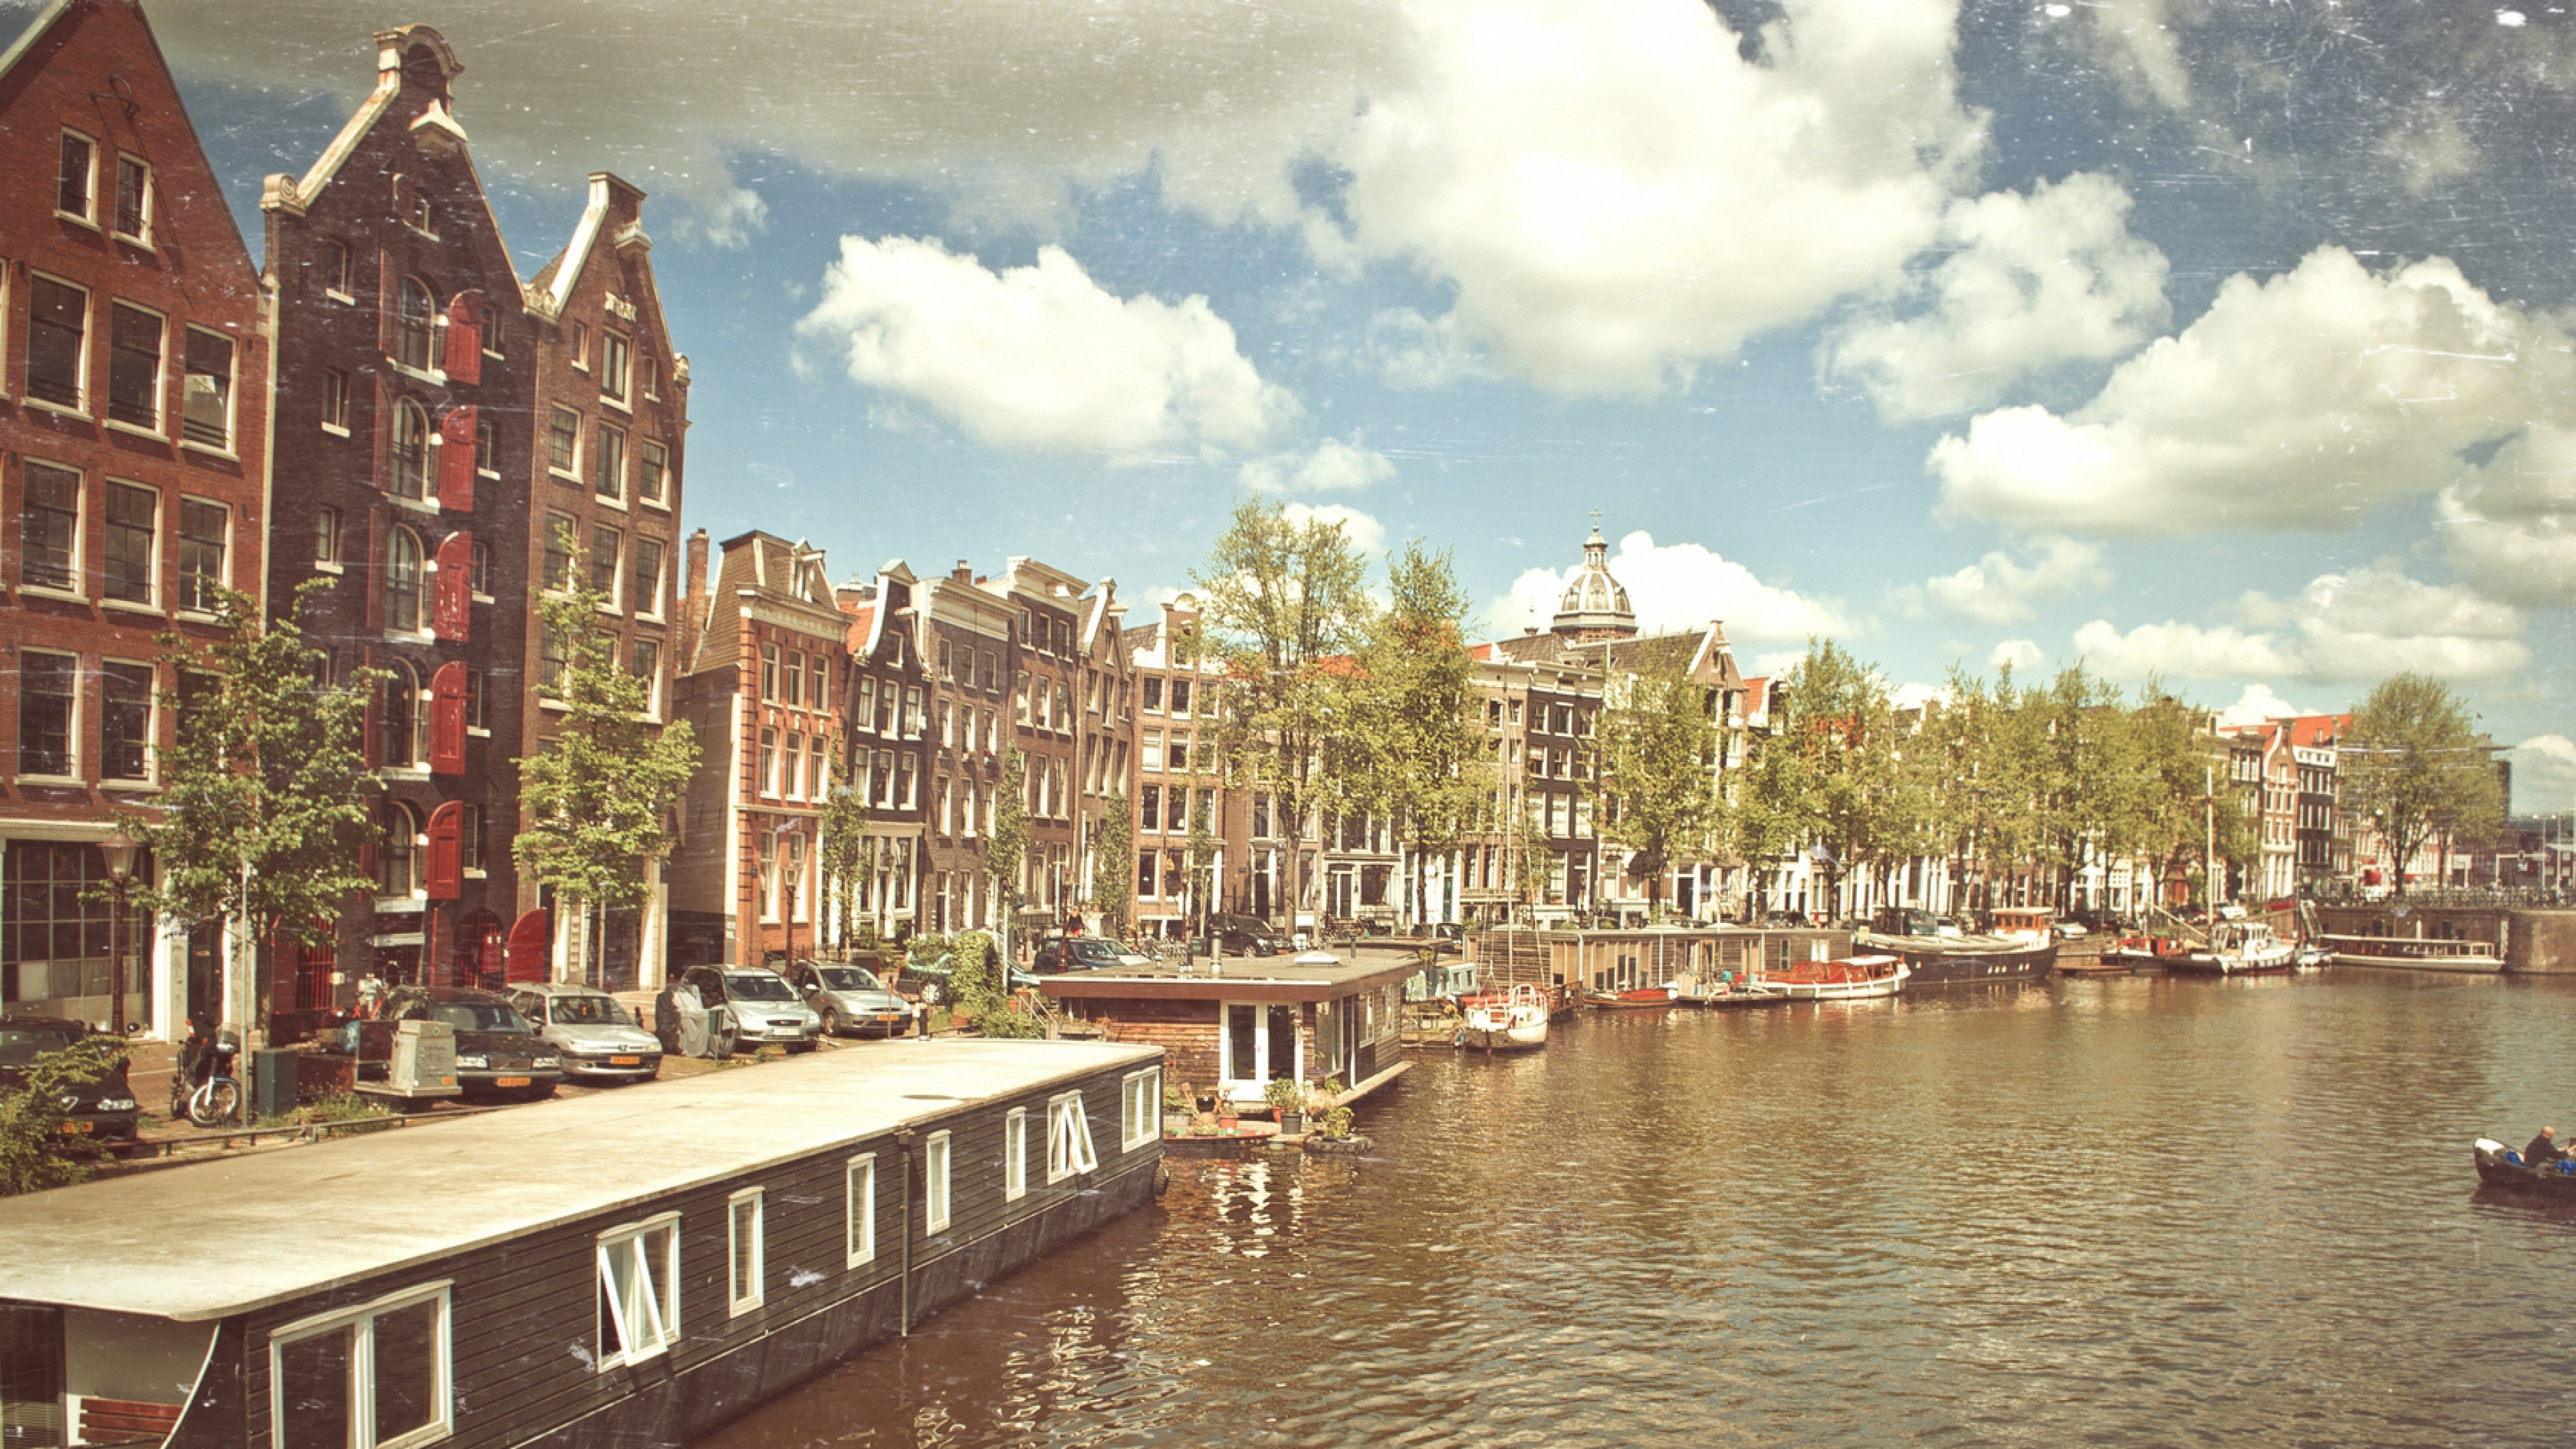 3d Hd Wallpapers For Windows 8 18 Excellent Hd Amsterdam Wallpapers